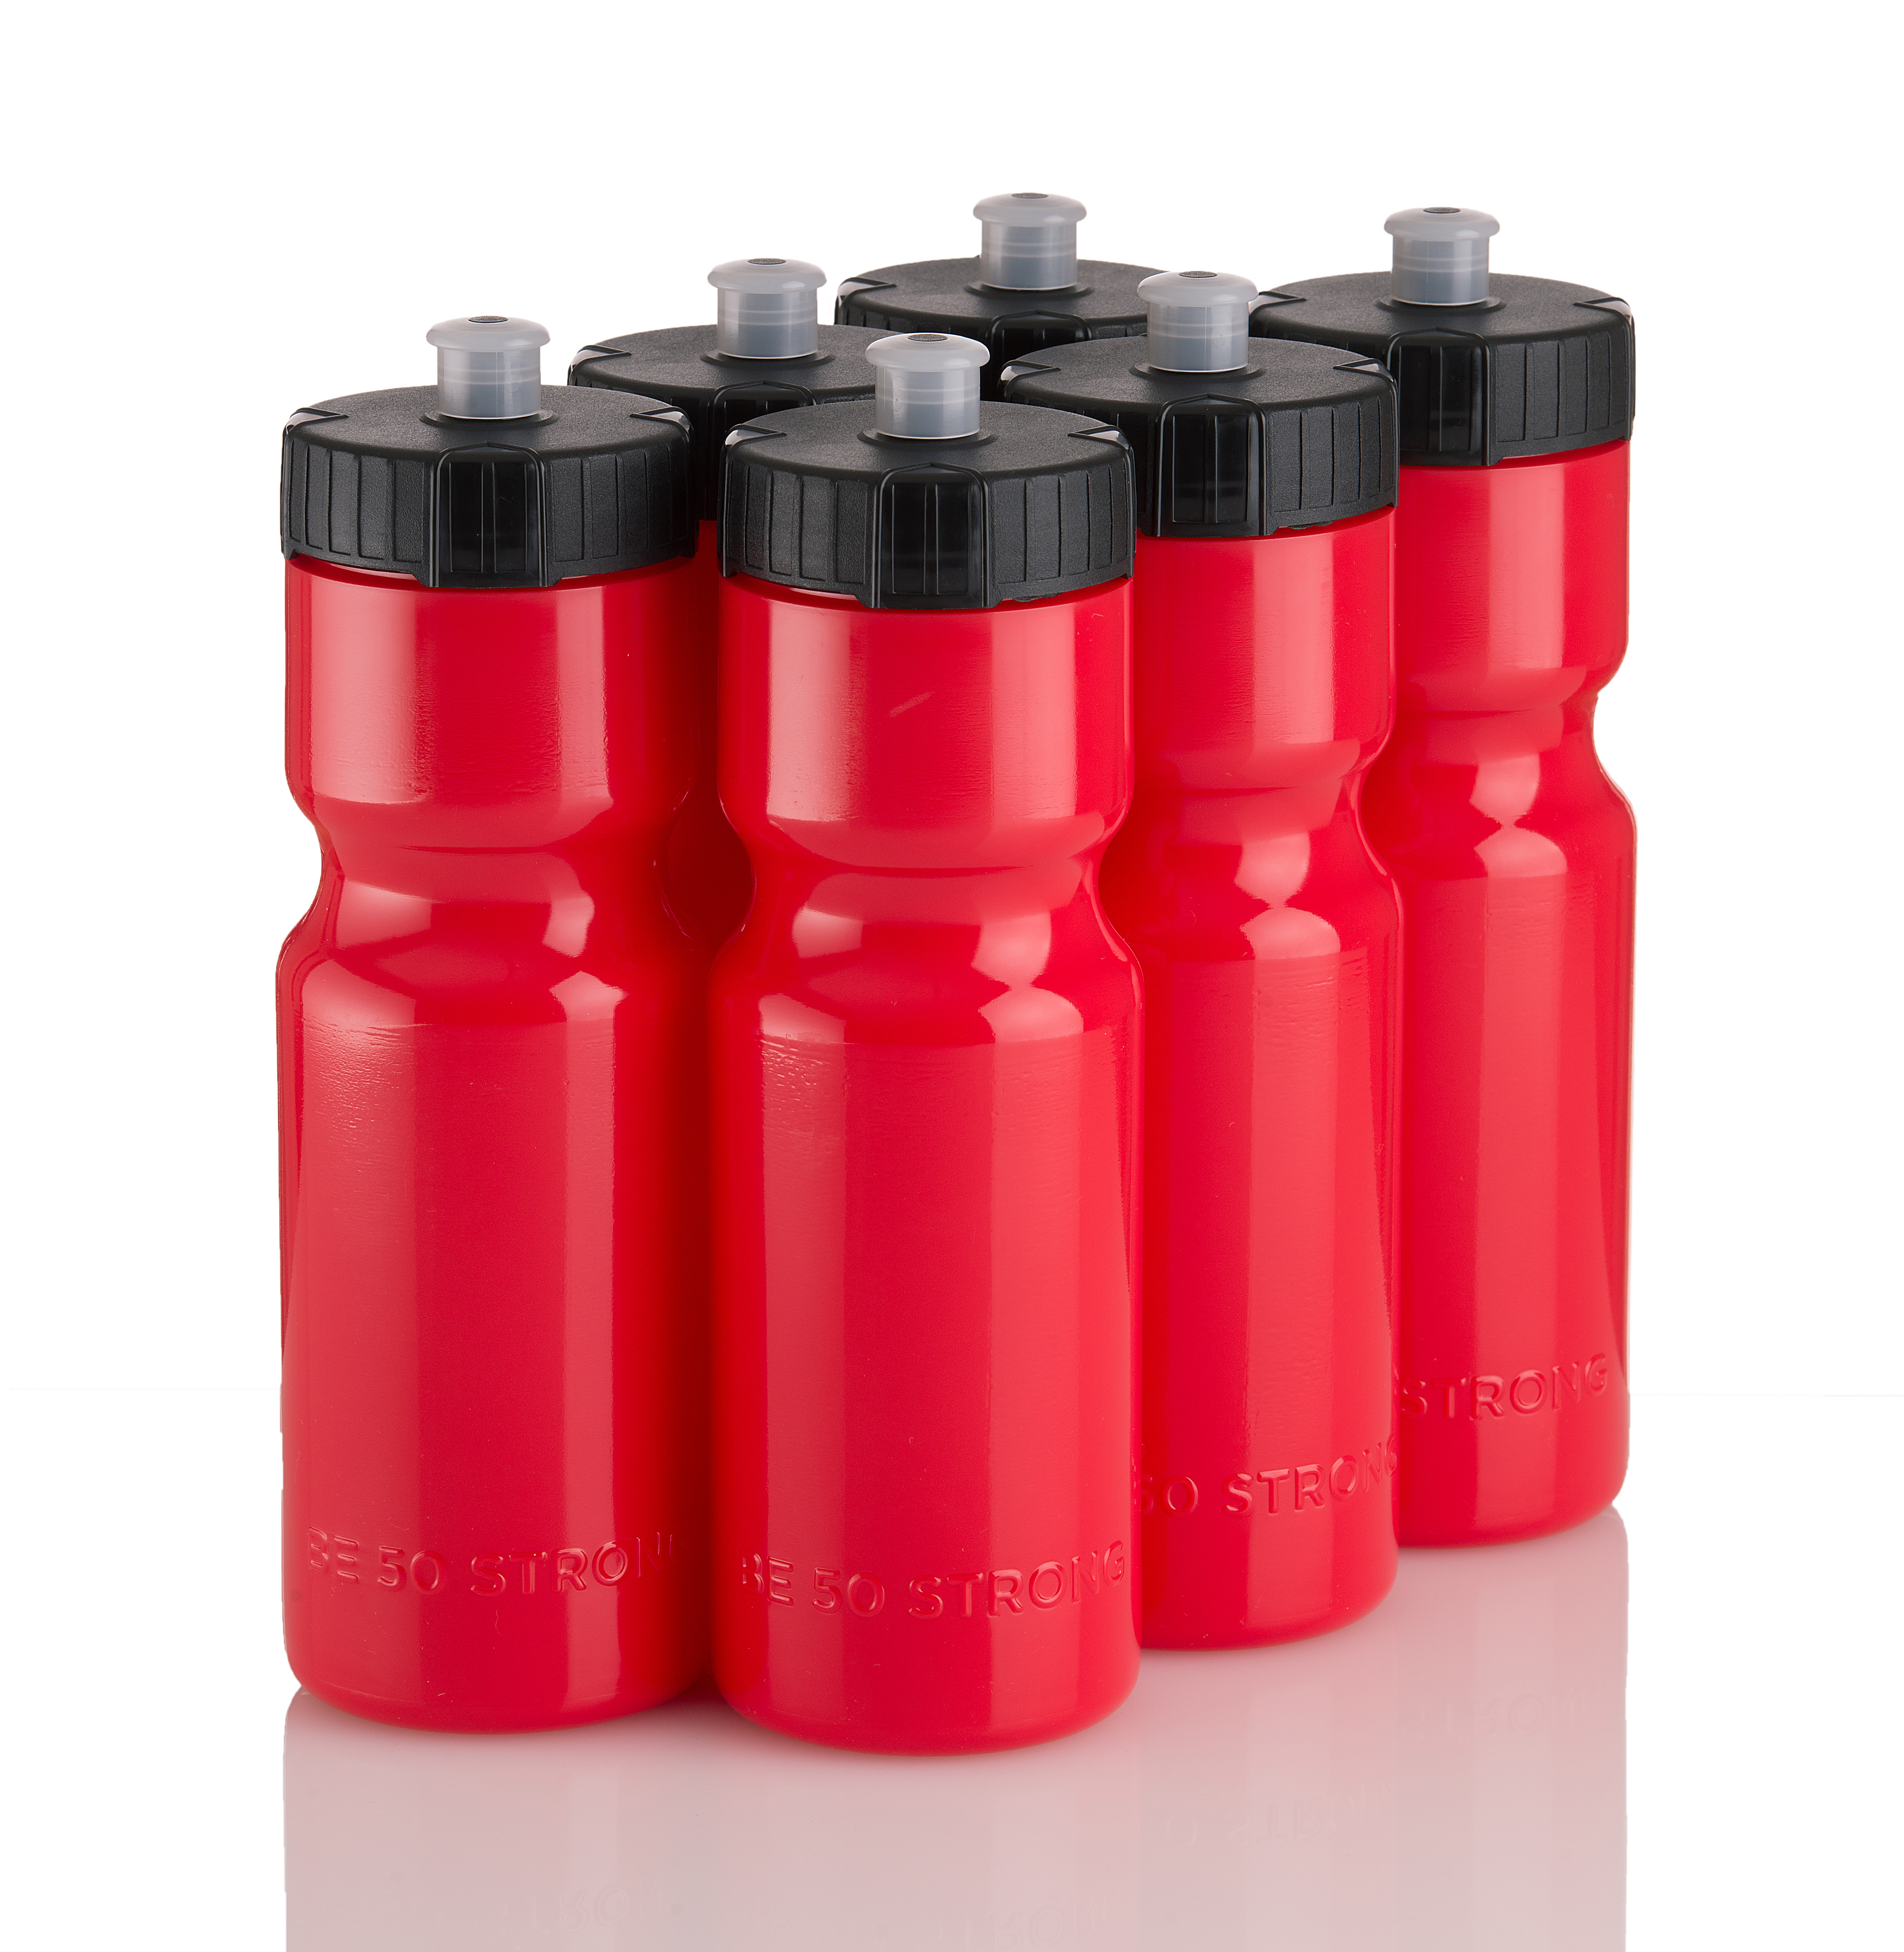 50 Strong Sports Squeeze Water Bottle Team Pack - Includes 6 Bottles - 22 oz. BPA Free